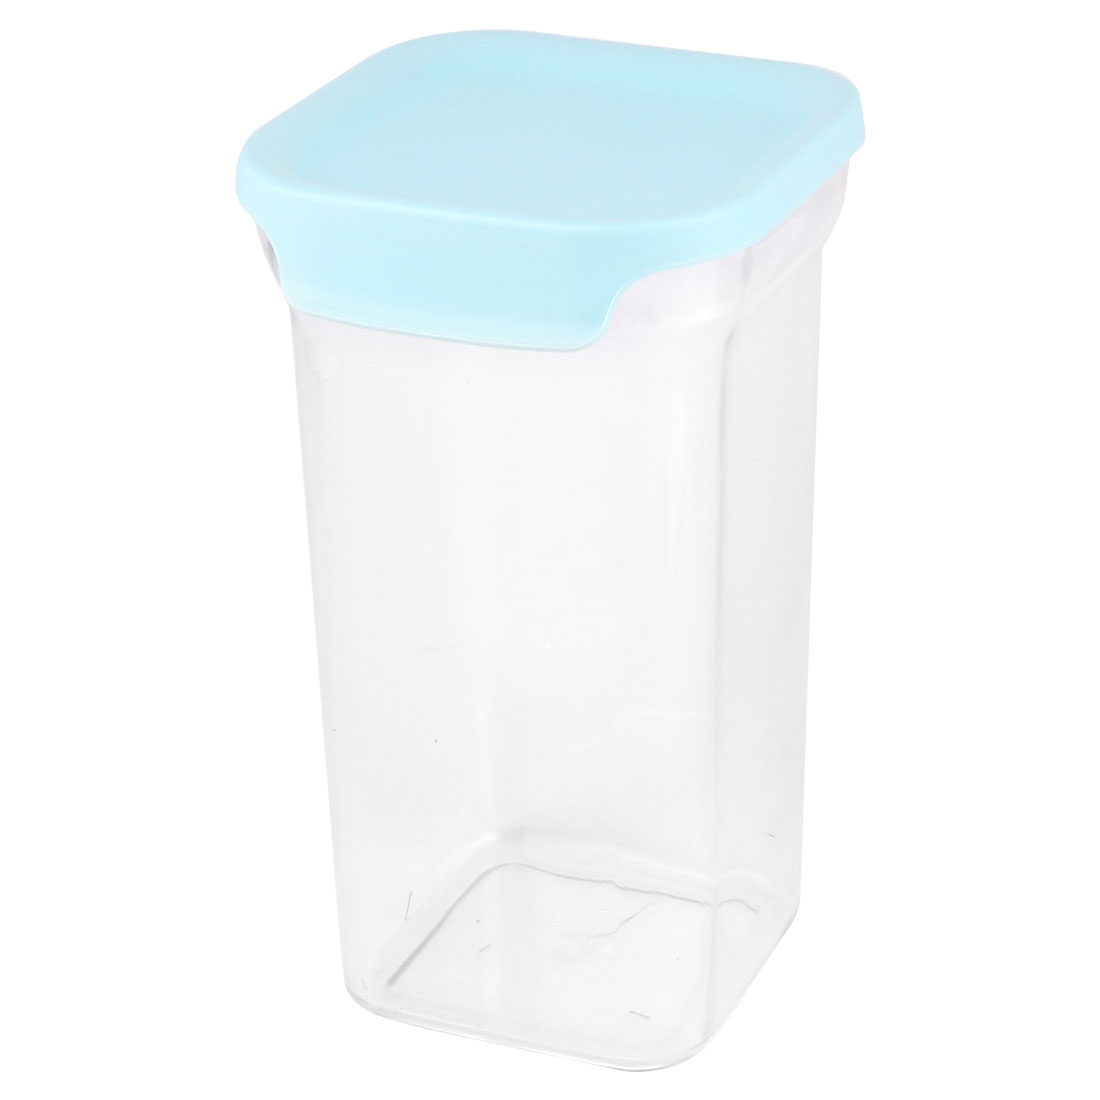 Kitchenware Plastic Airtight Food Cereals Dry Fruit Snacks Storage Box Organizer Blue Clear 1300ML